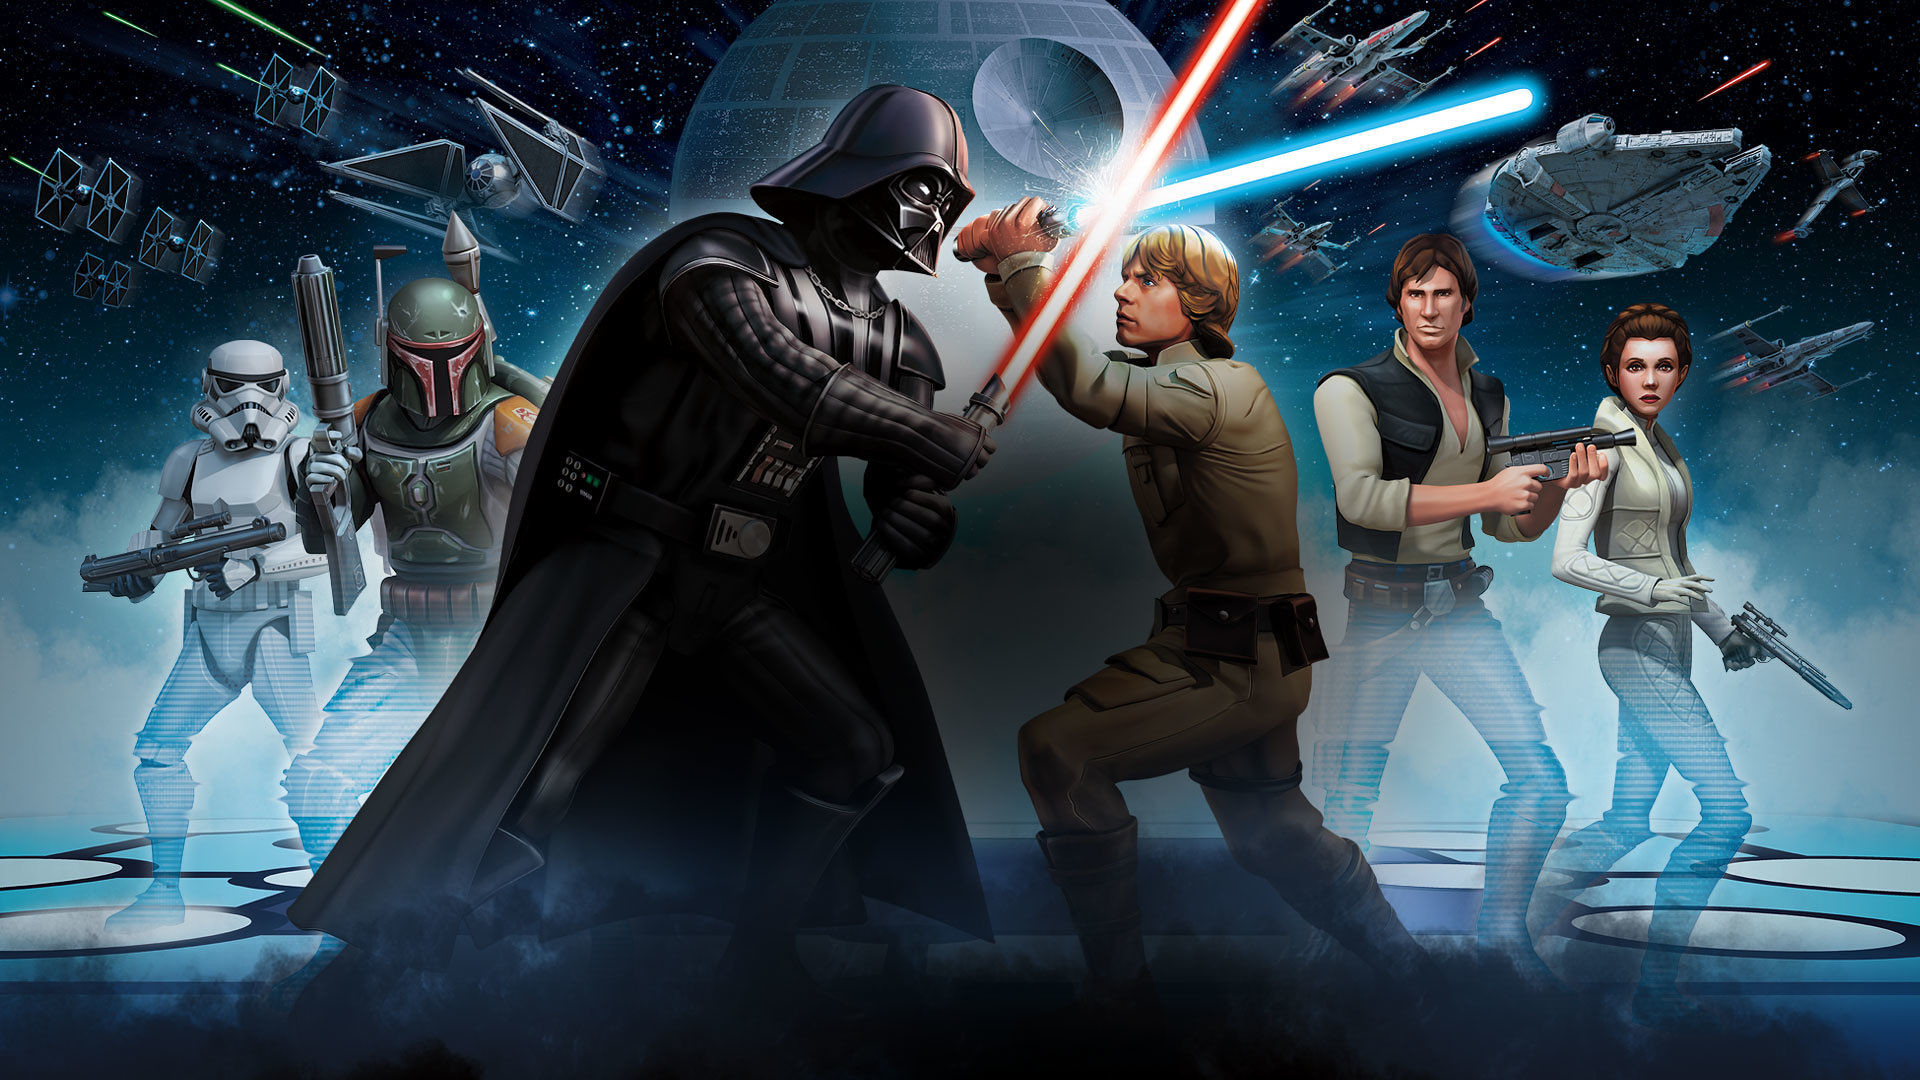 Star Wars Galaxy of Heroes gets Androidexclusive content ahead